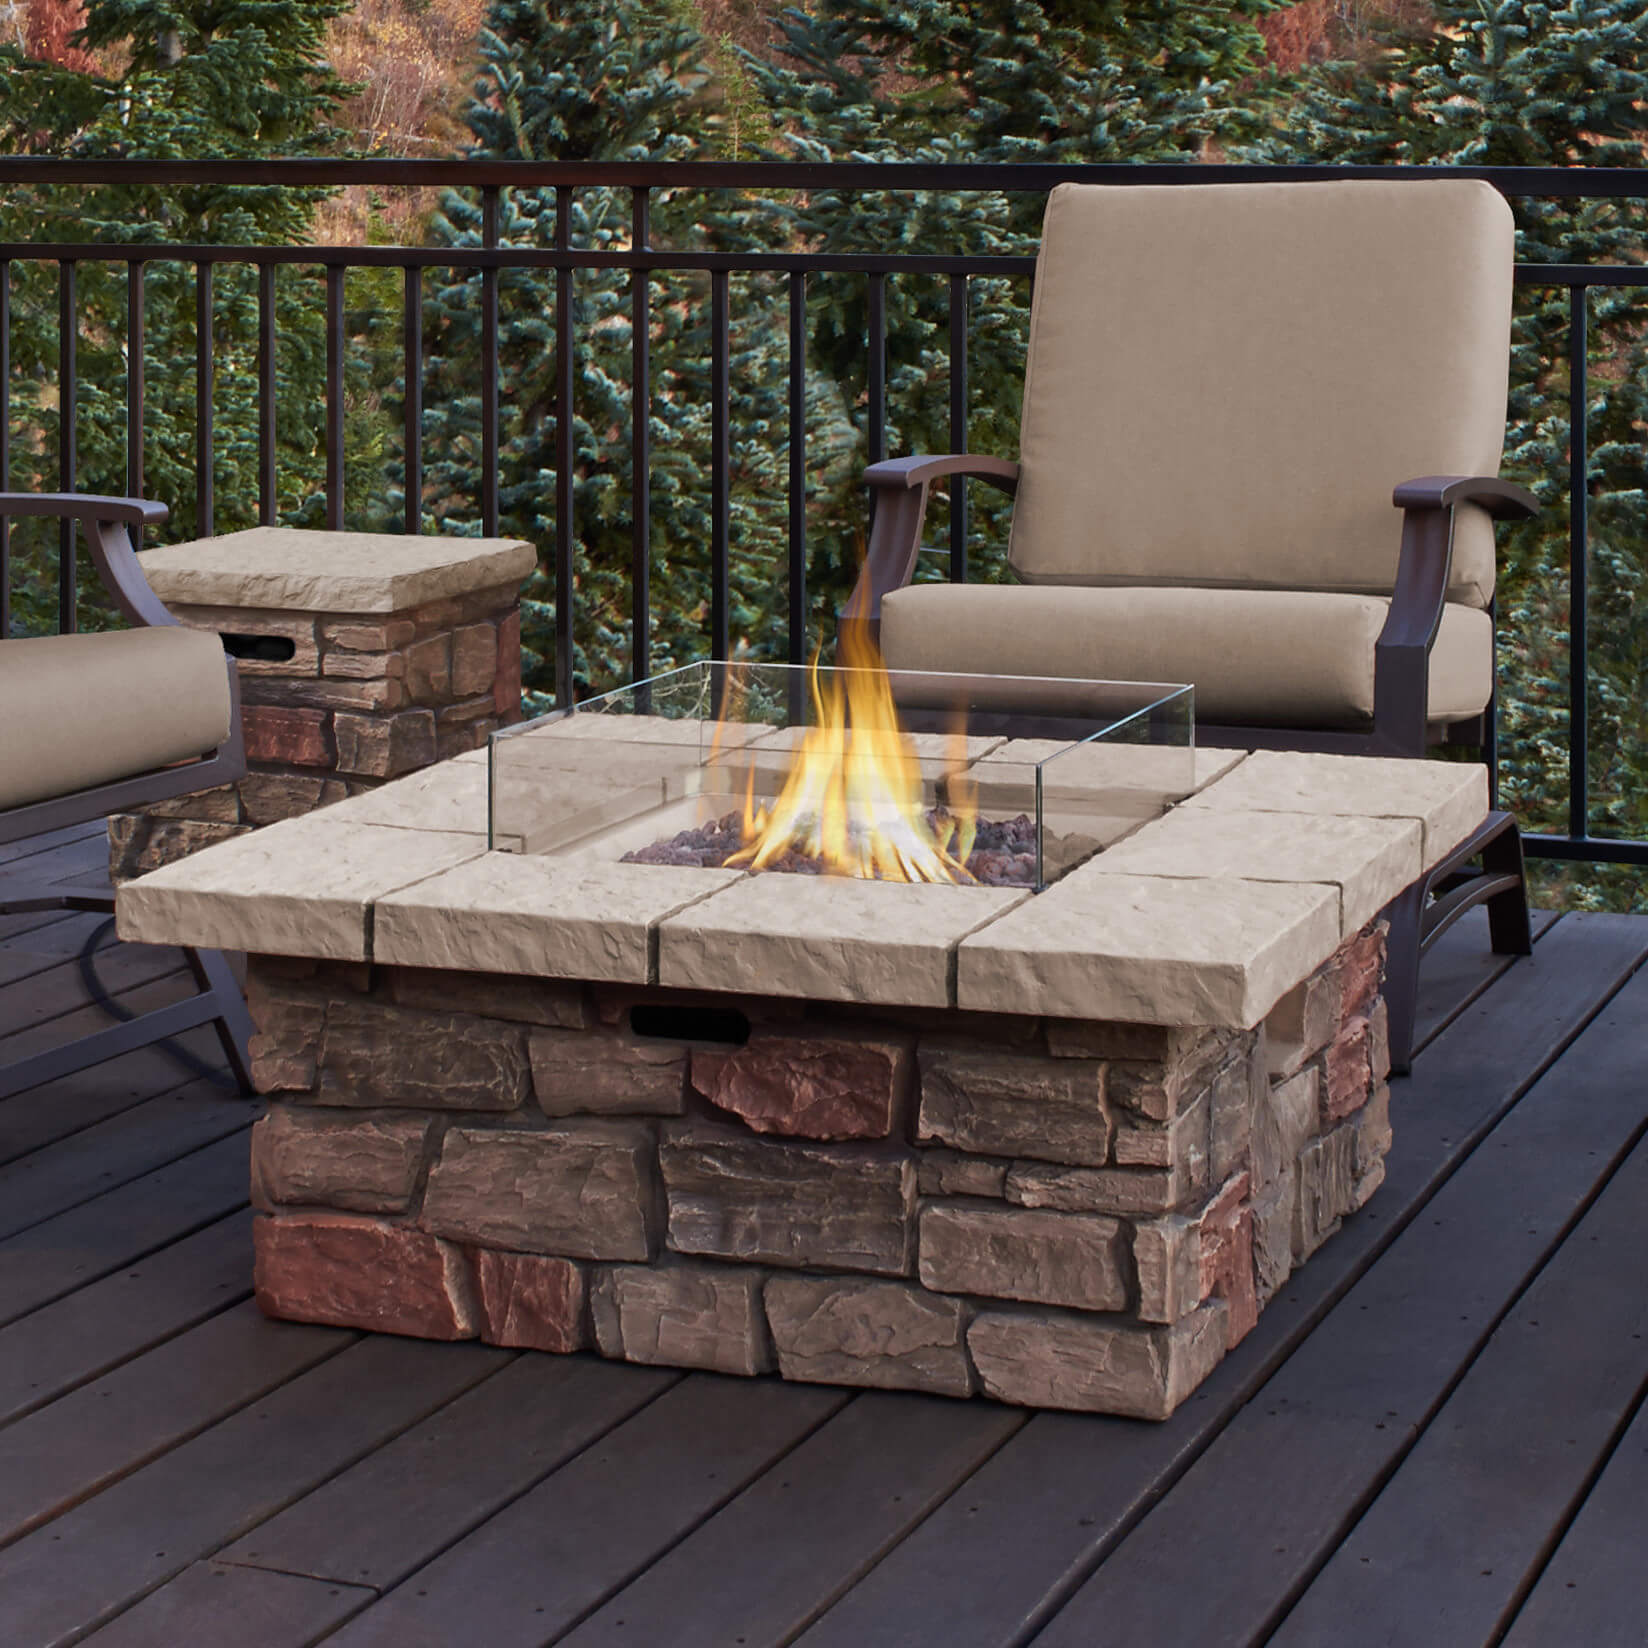 Top 15 types of propane patio fire pits with table buying guide give your home a cool fire pit table with this brick faade propane patio fire pit geotapseo Image collections